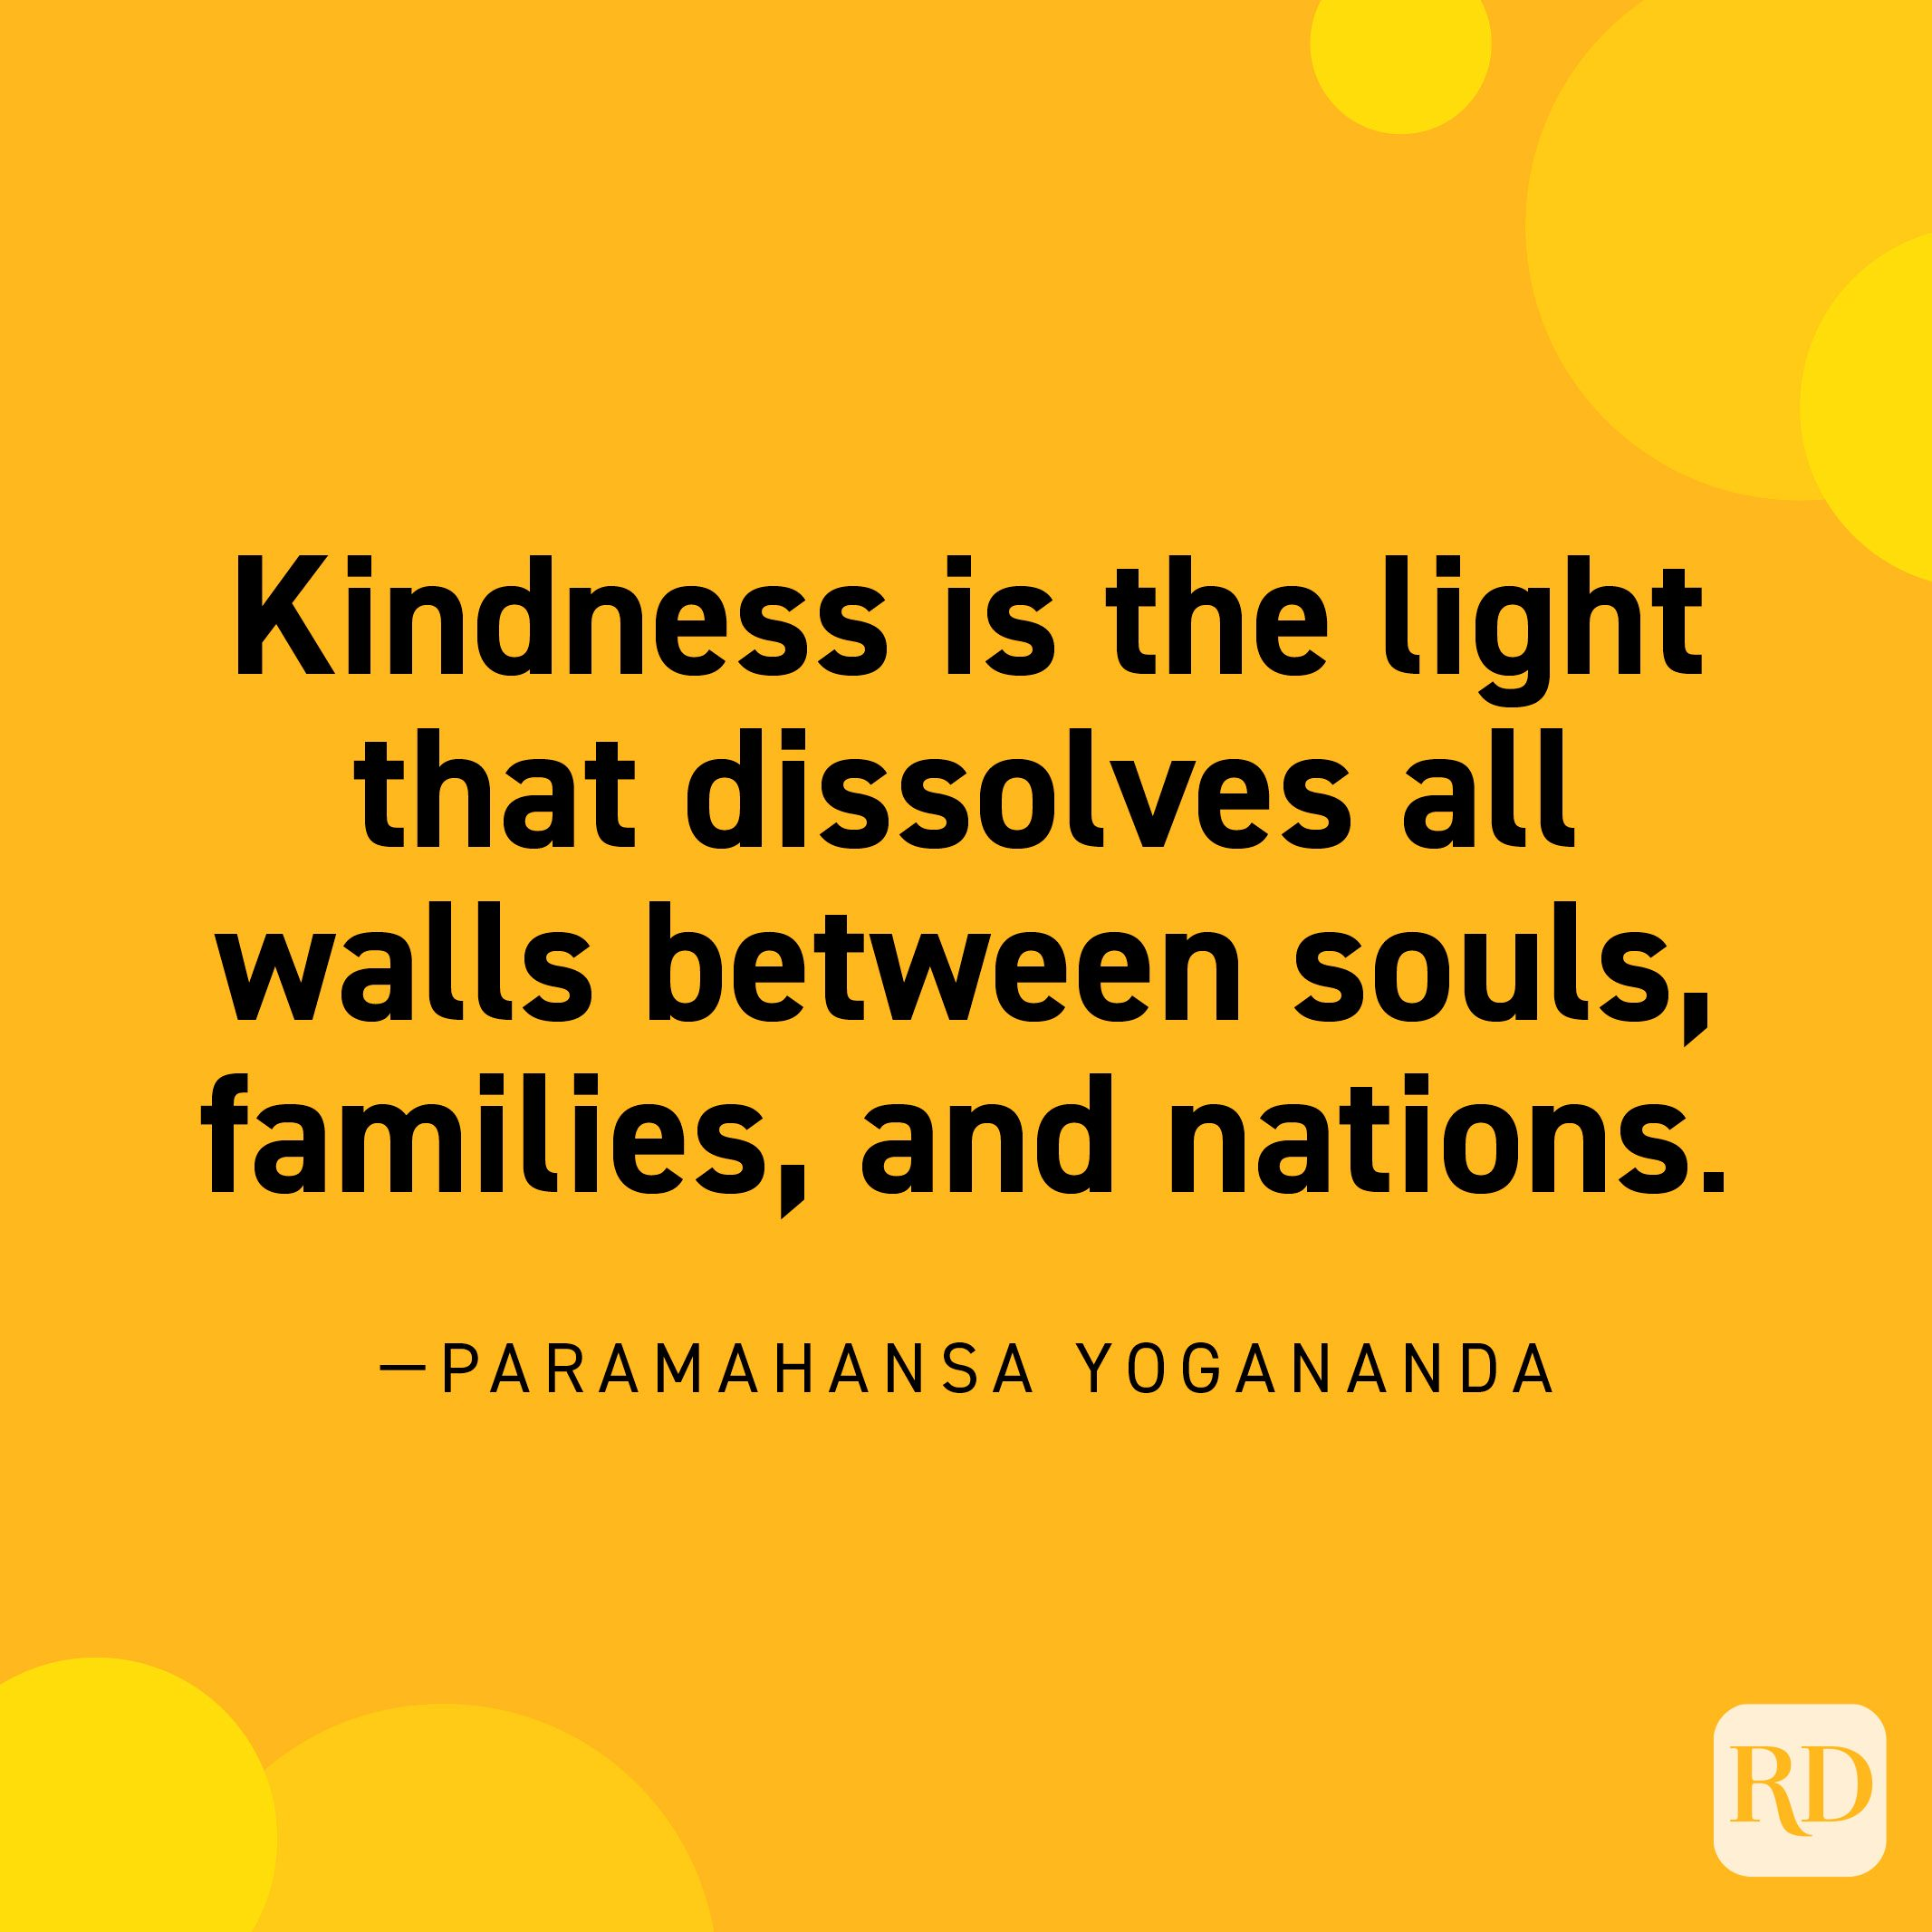 """""""Kindness is the light that dissolves all walls between souls, families, and nations."""" —Paramahansa Yogananda"""